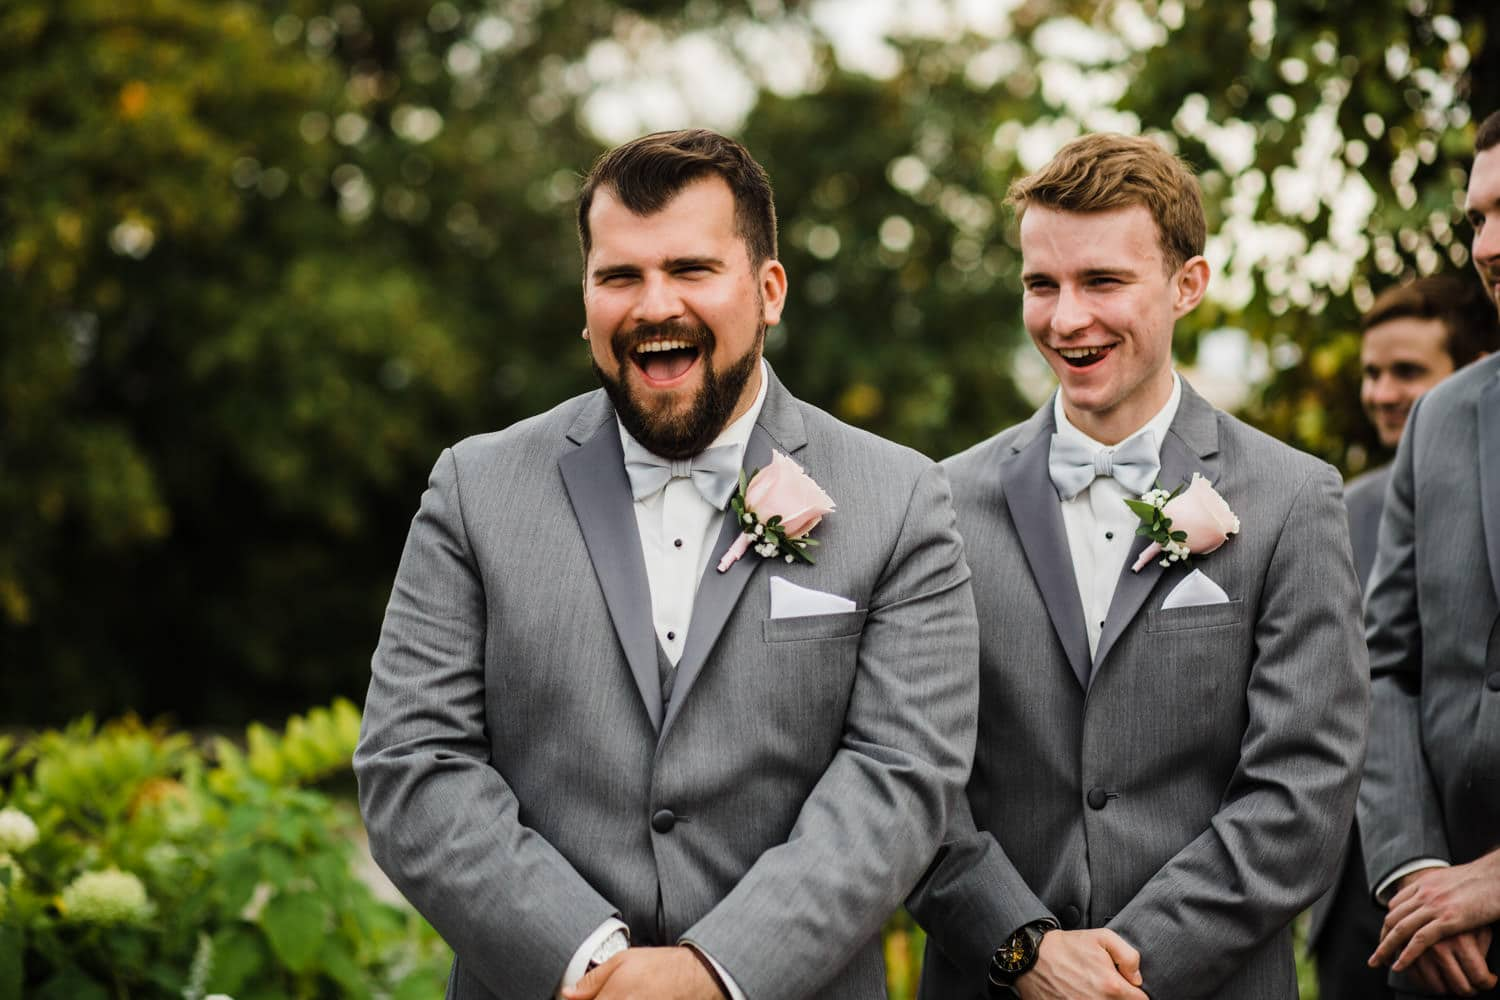 groomsmen laugh during ceremony - outdoor summer wedding